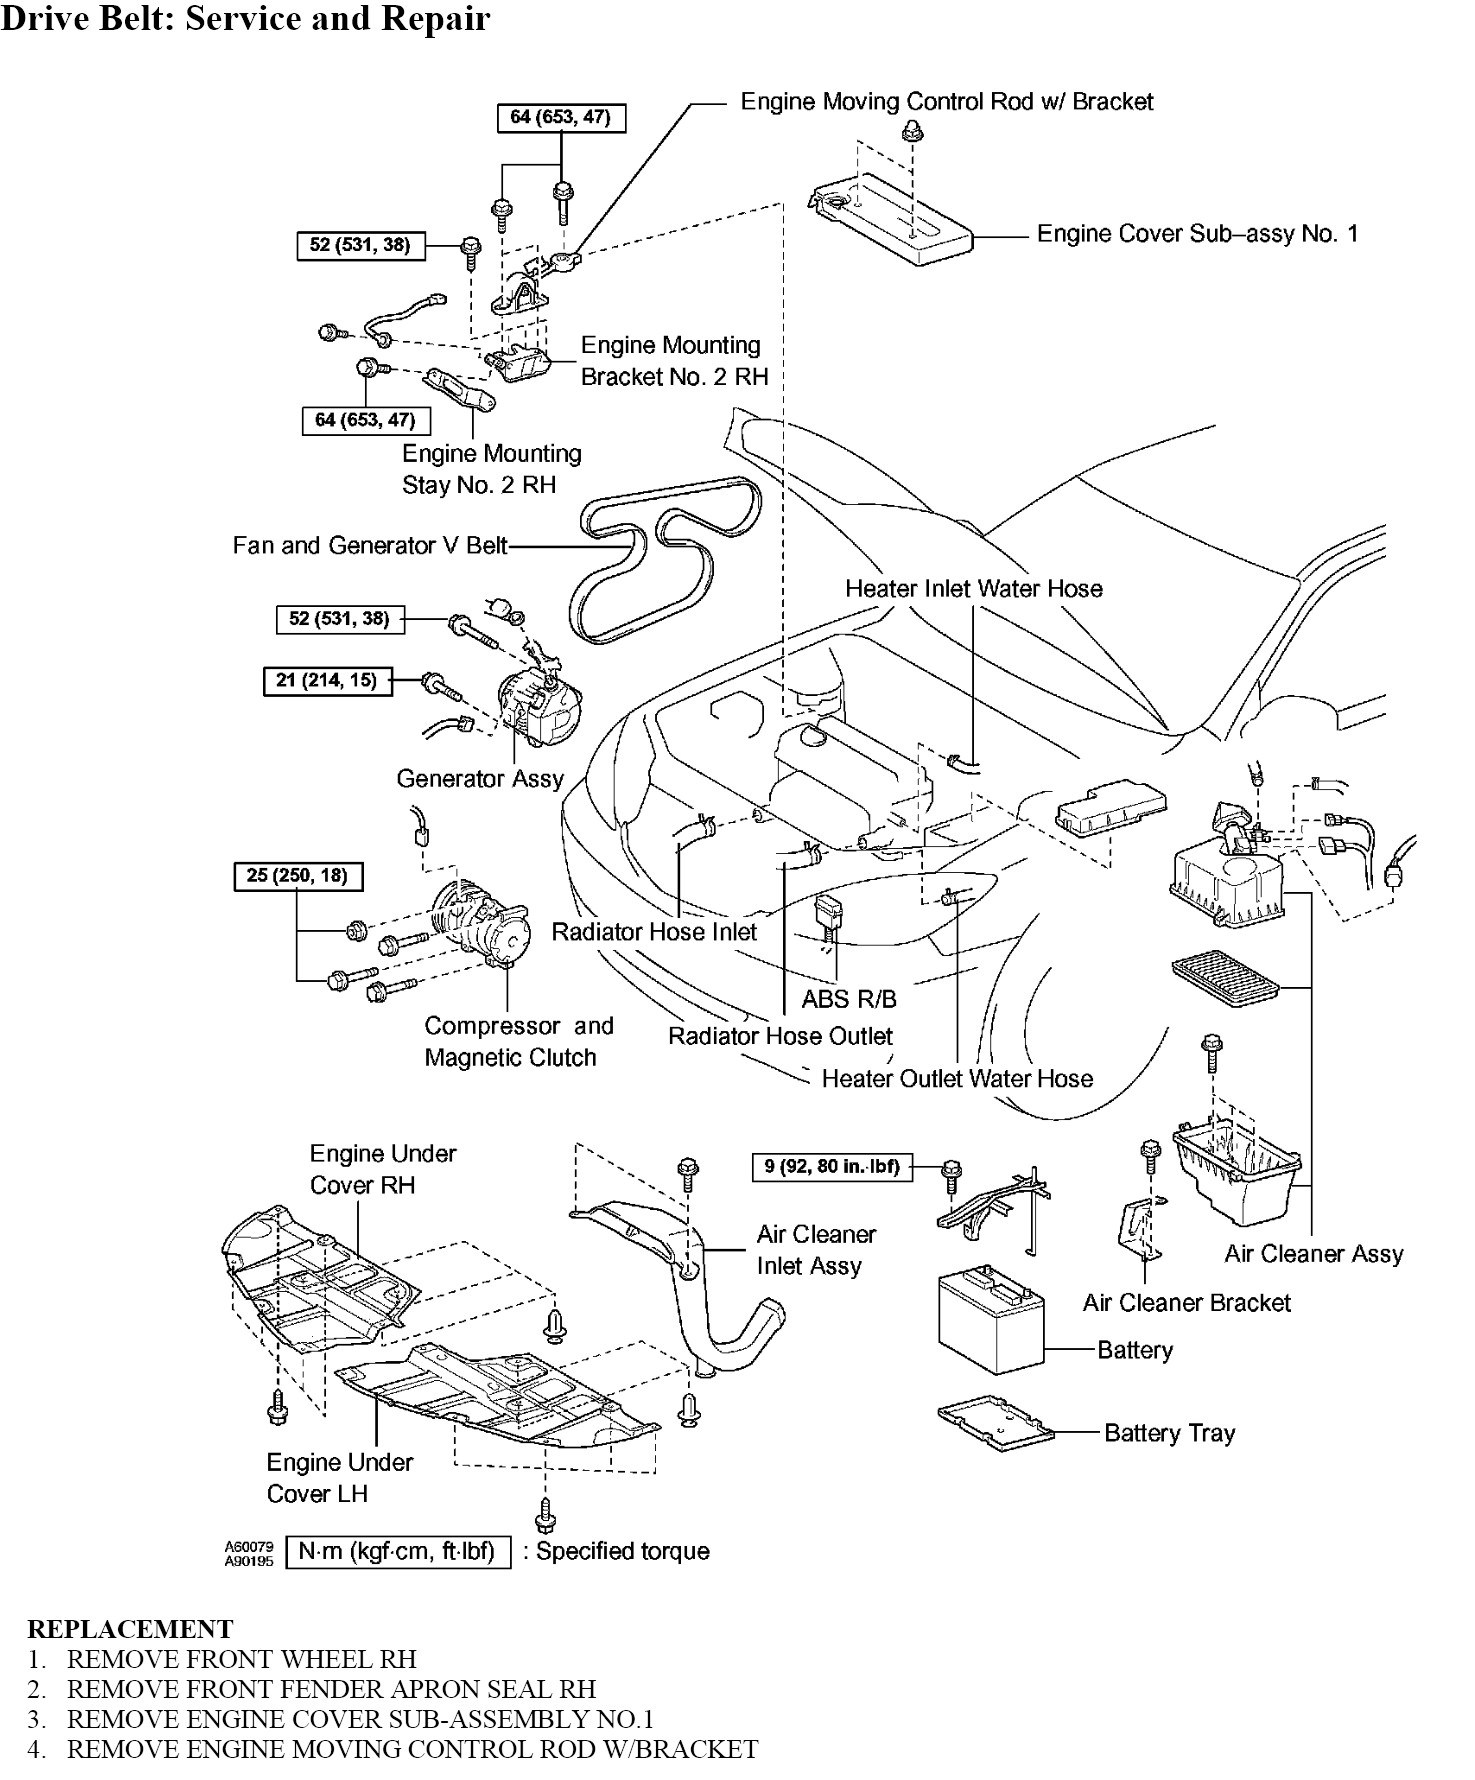 96 Toyota Camry Alternator Wiring Schematic Example Electrical Diagram V6 Engine Get Free Image 1996 1998